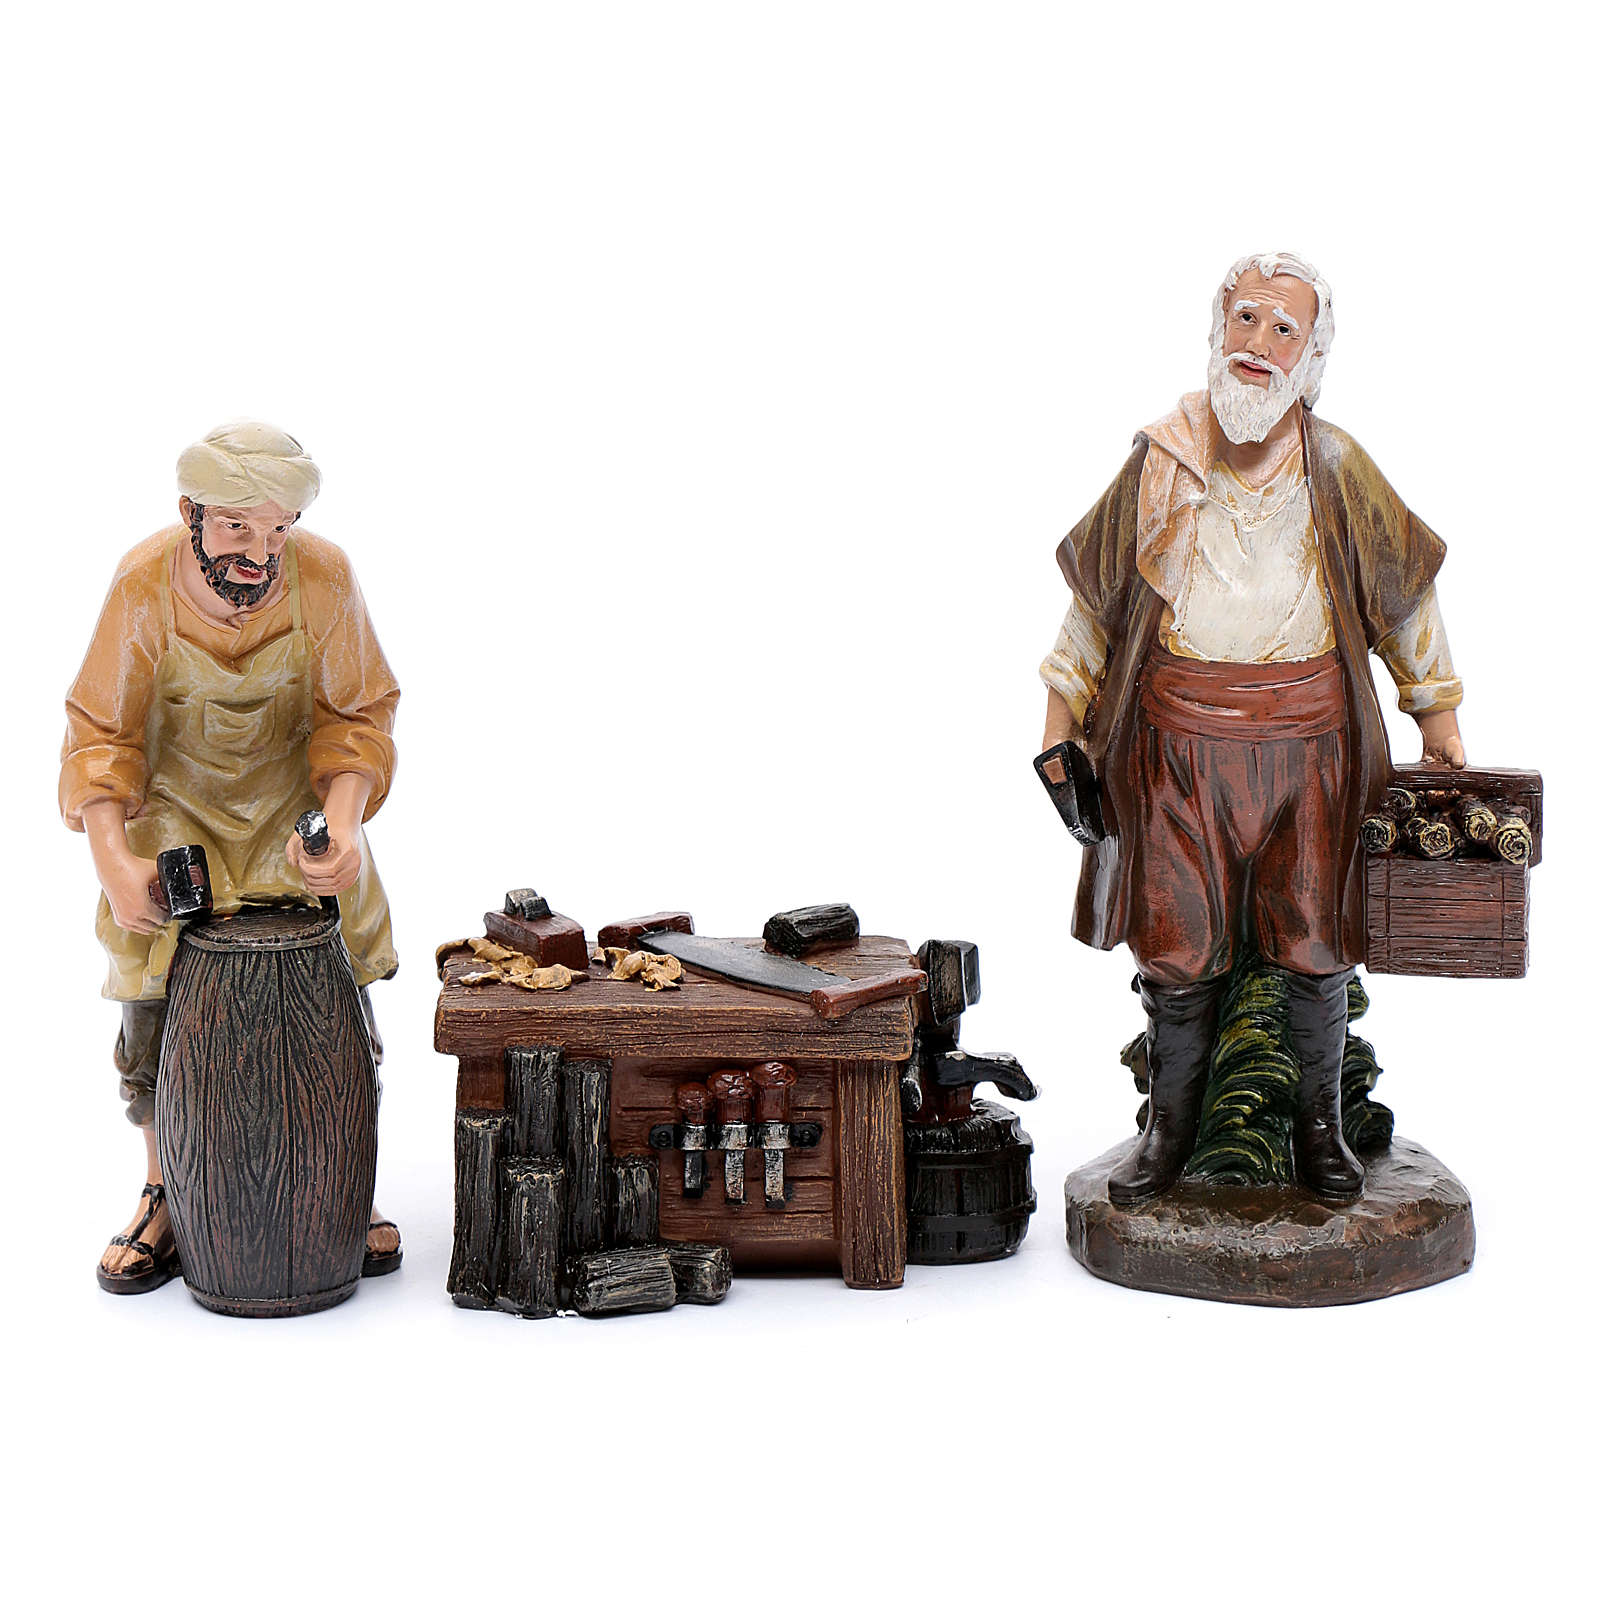 Nativity scene characters carpenters with counter resin 20 cm set of 3 pieces 3